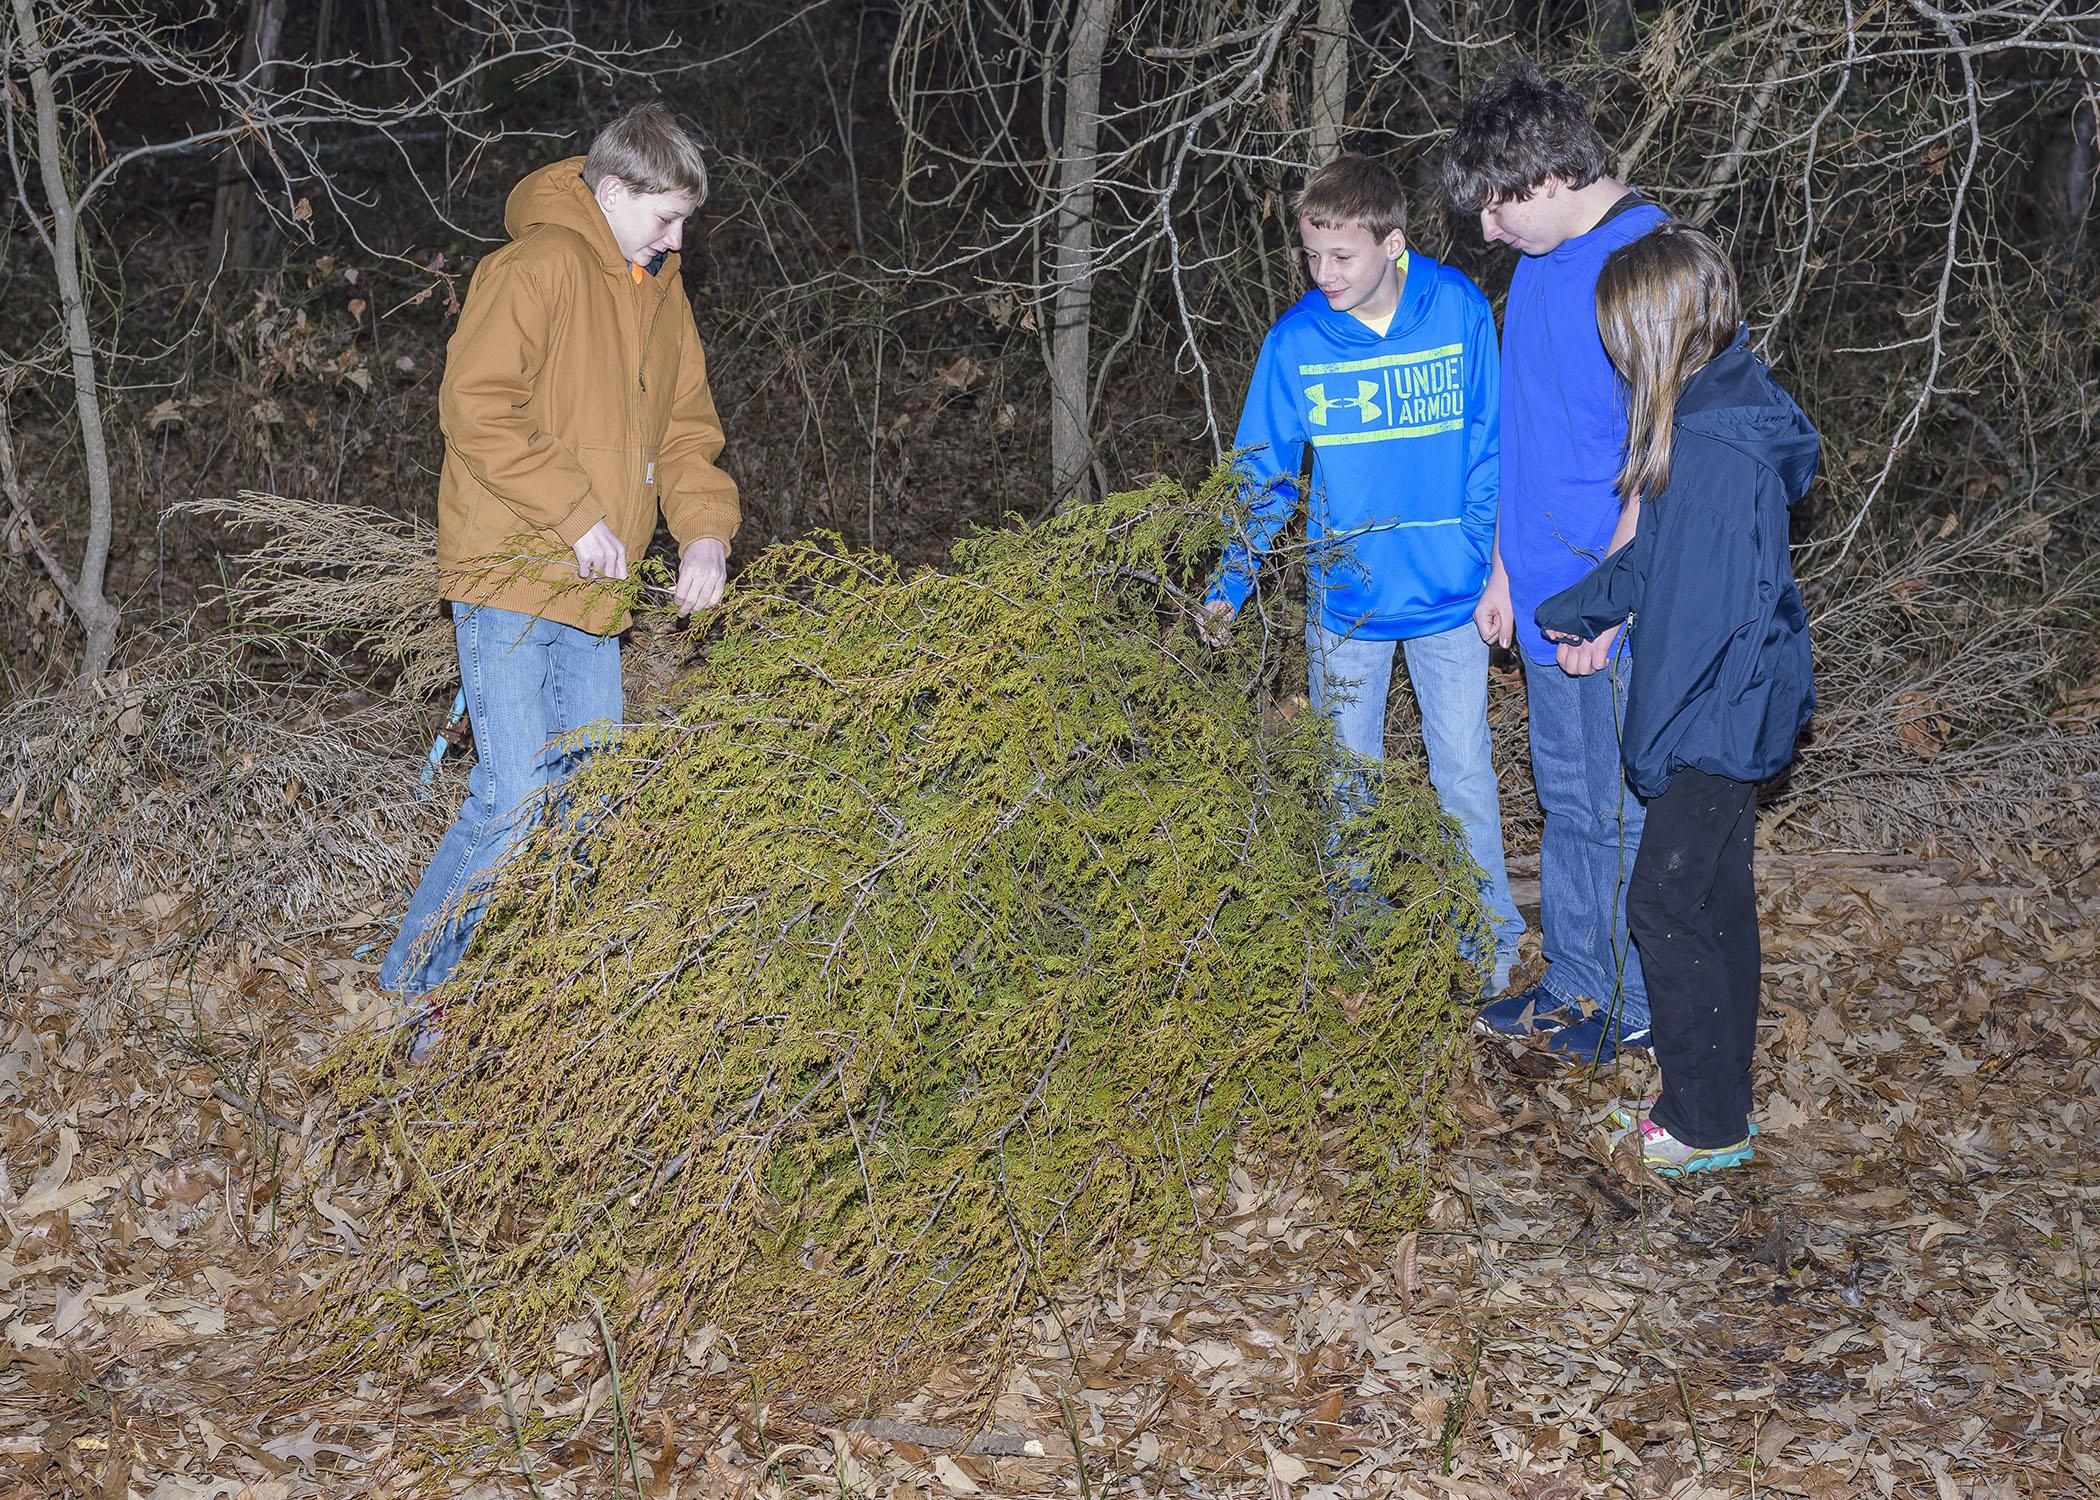 Ben Carr of Ackerman, left, helps his brother Pete, cousin Max Hudson of Louisville and sister Carrie move their grandfather's Christmas tree to the edge of his yard for wildlife cover on Jan. 7, 2015. (Photo by MSU Ag Communications/Kevin Hudson)